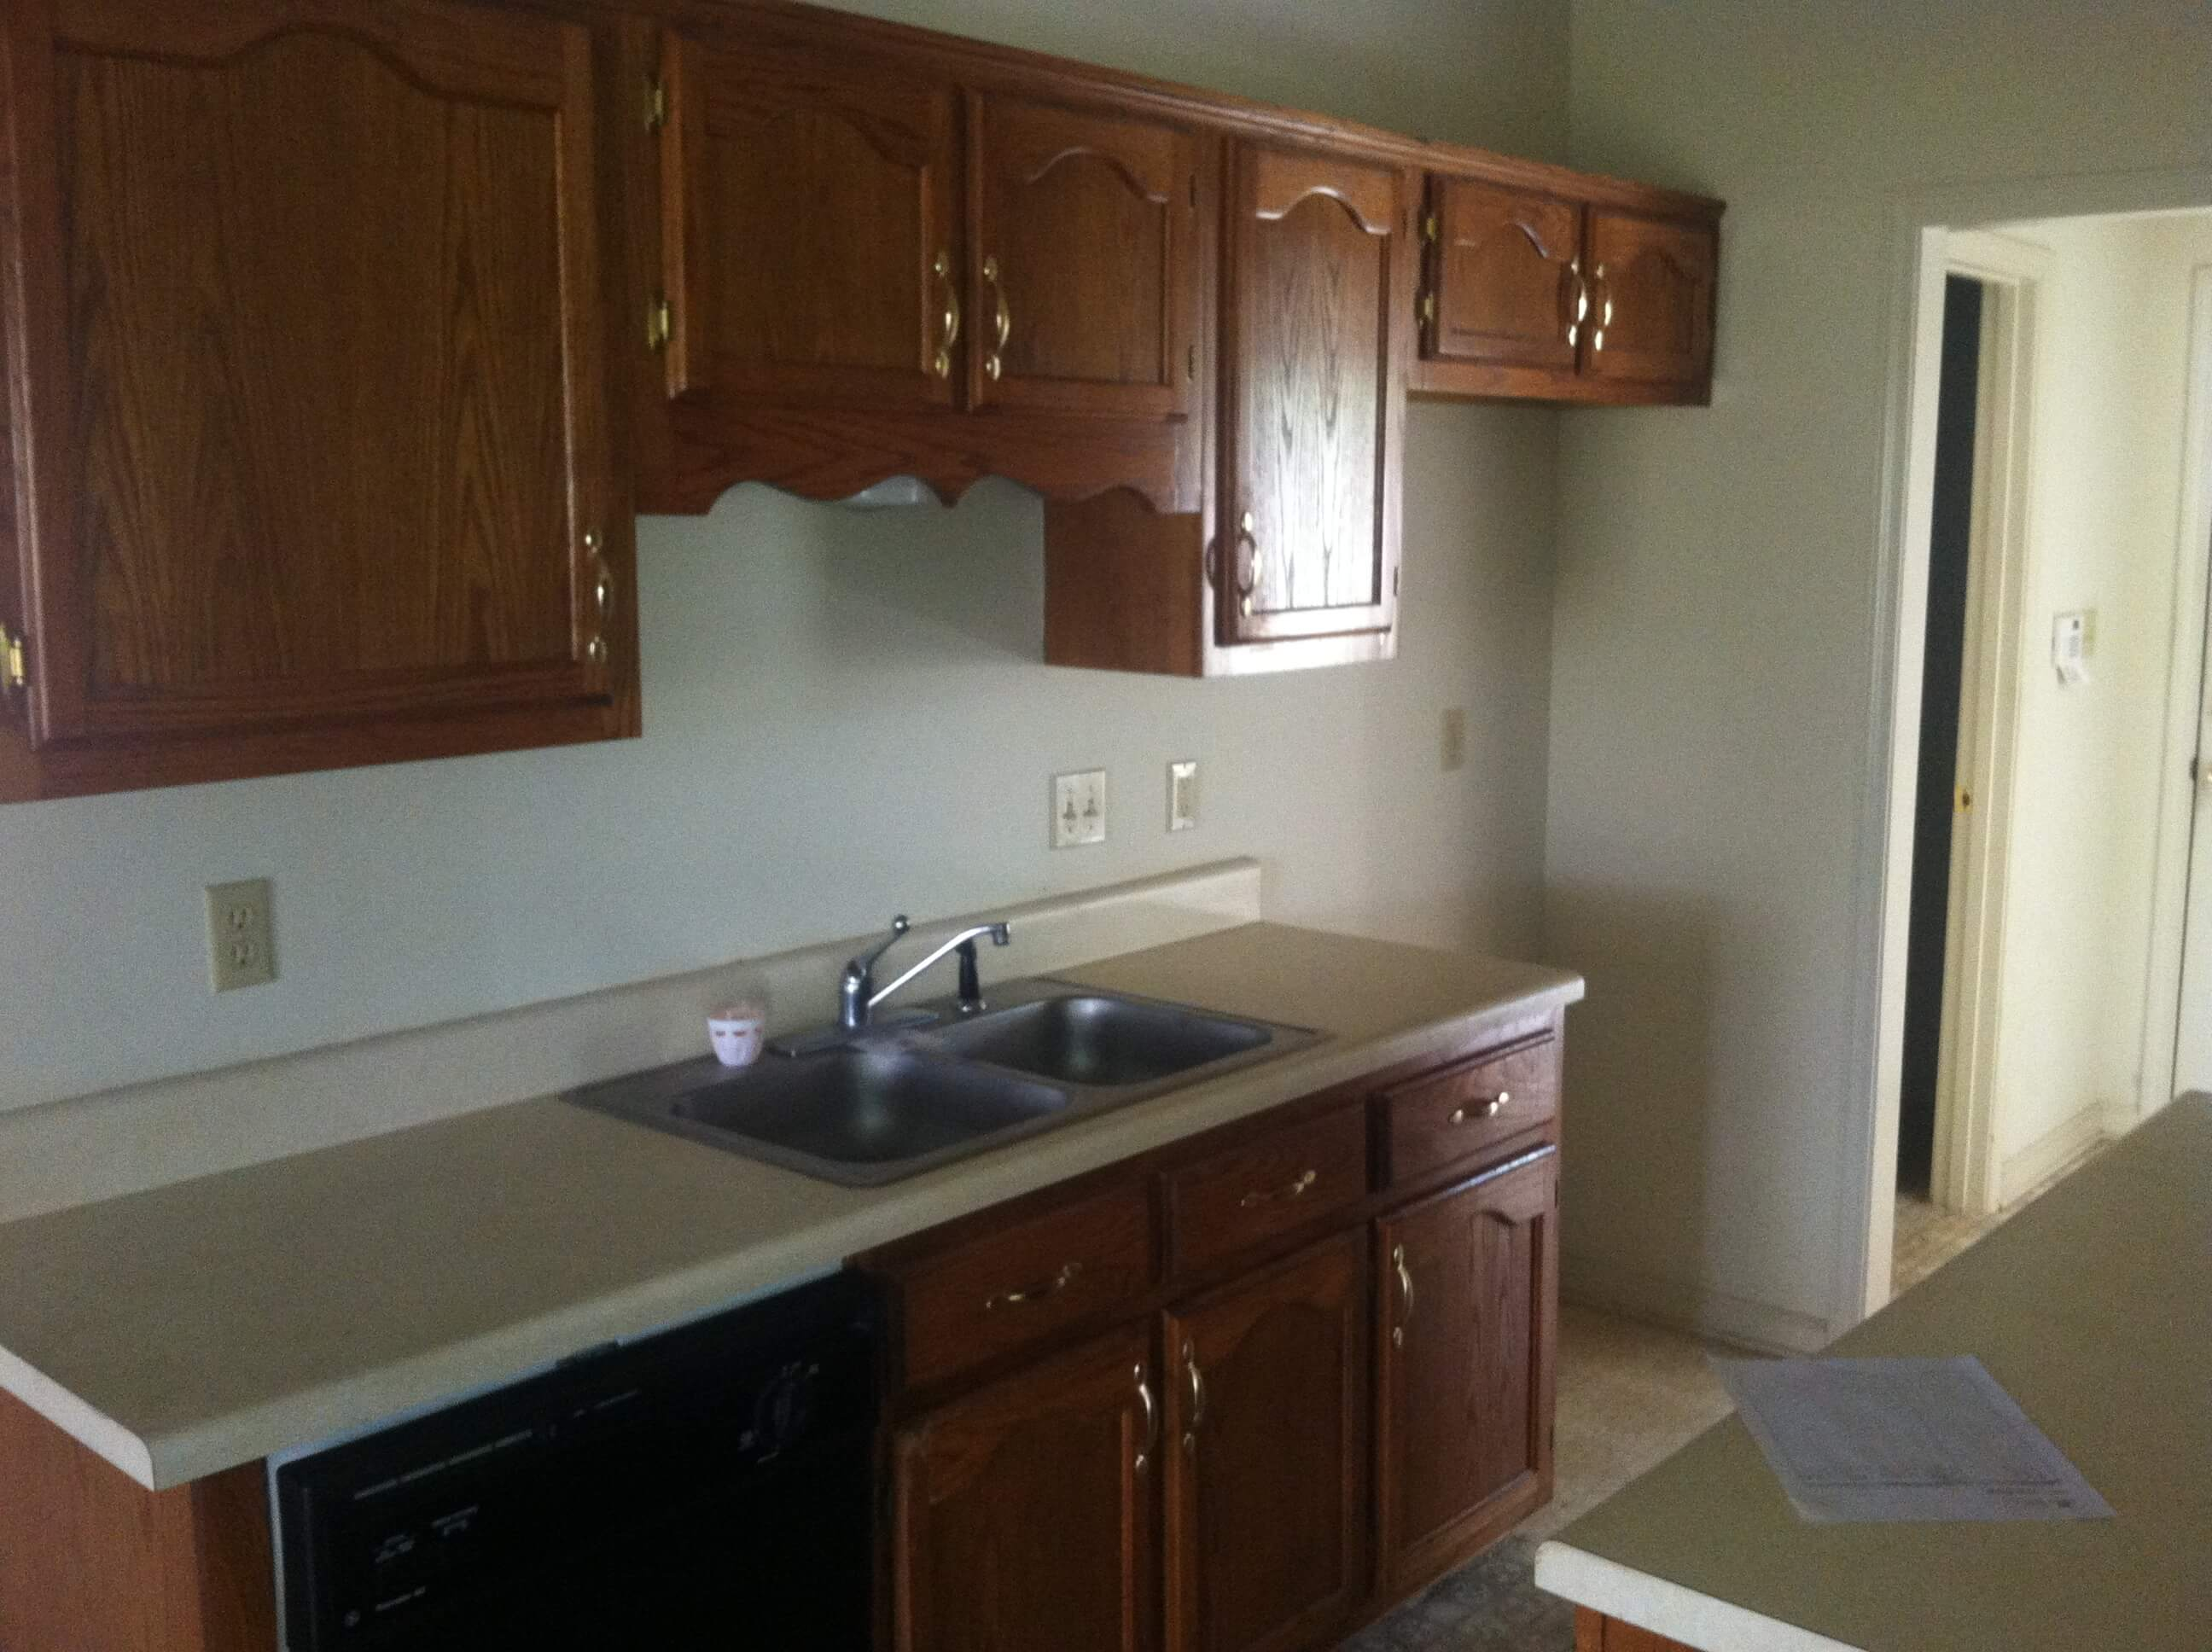 To Remodel Kitchen How To Remodel A 20 Year Old Kitchen For Less Than 3000